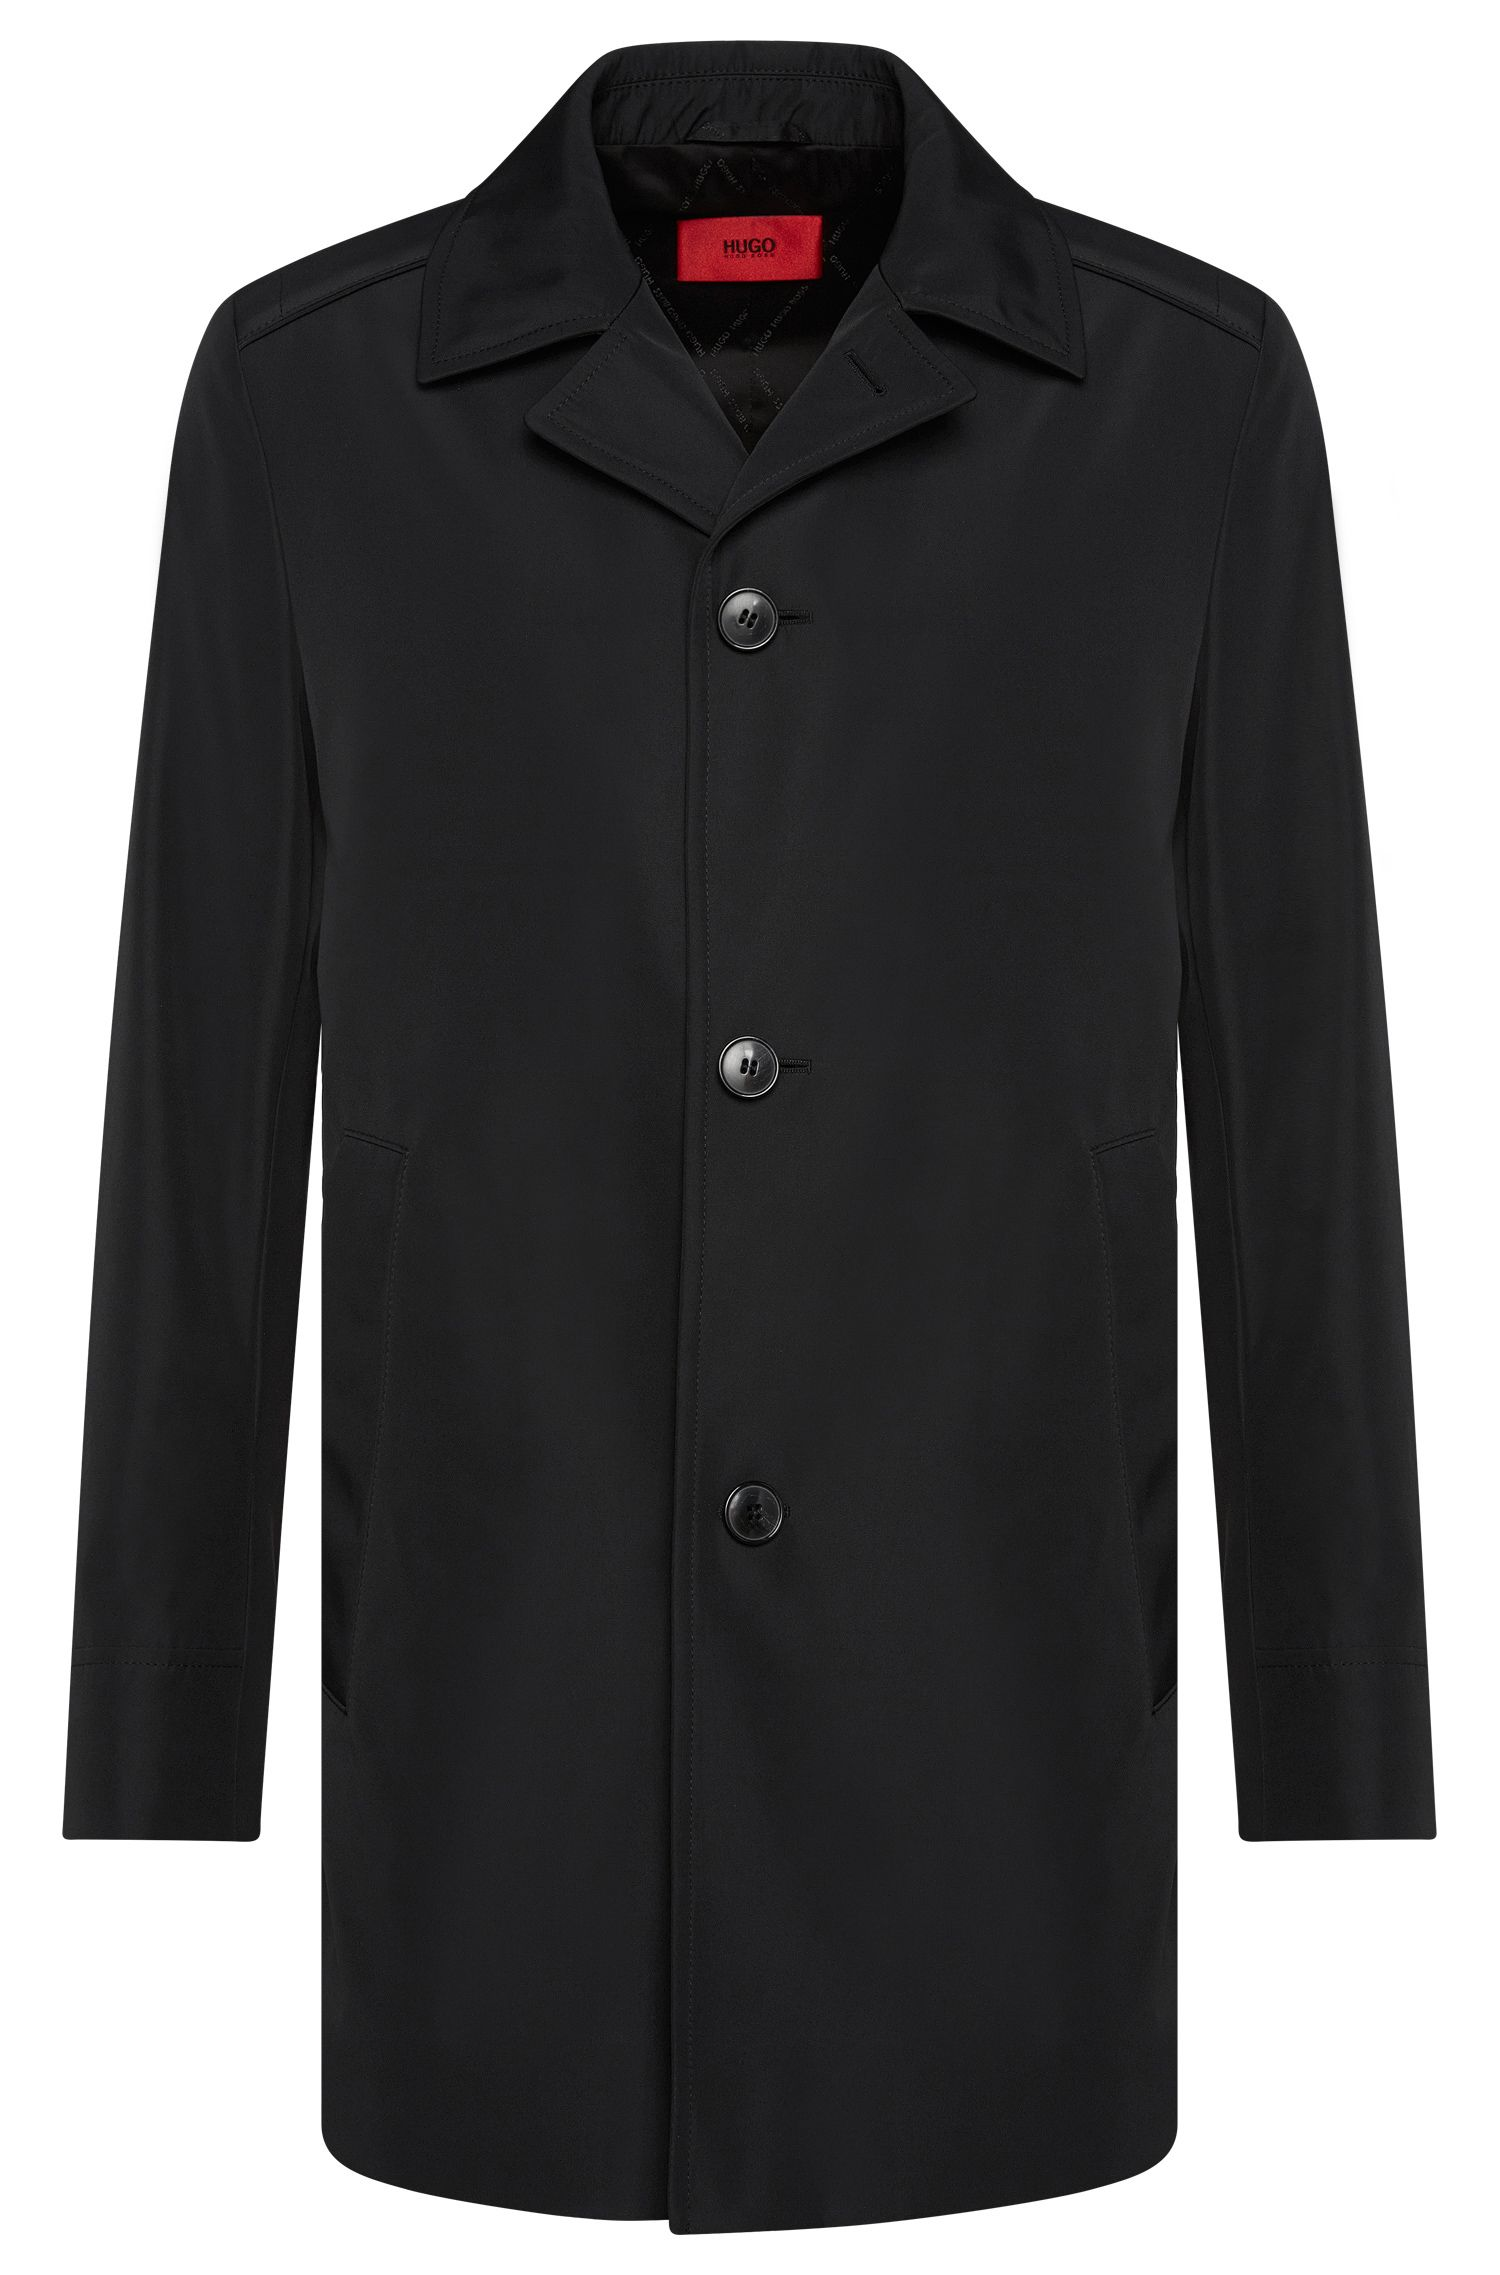 Manteau court Regular Fit imperméable : « C-Dais7 »